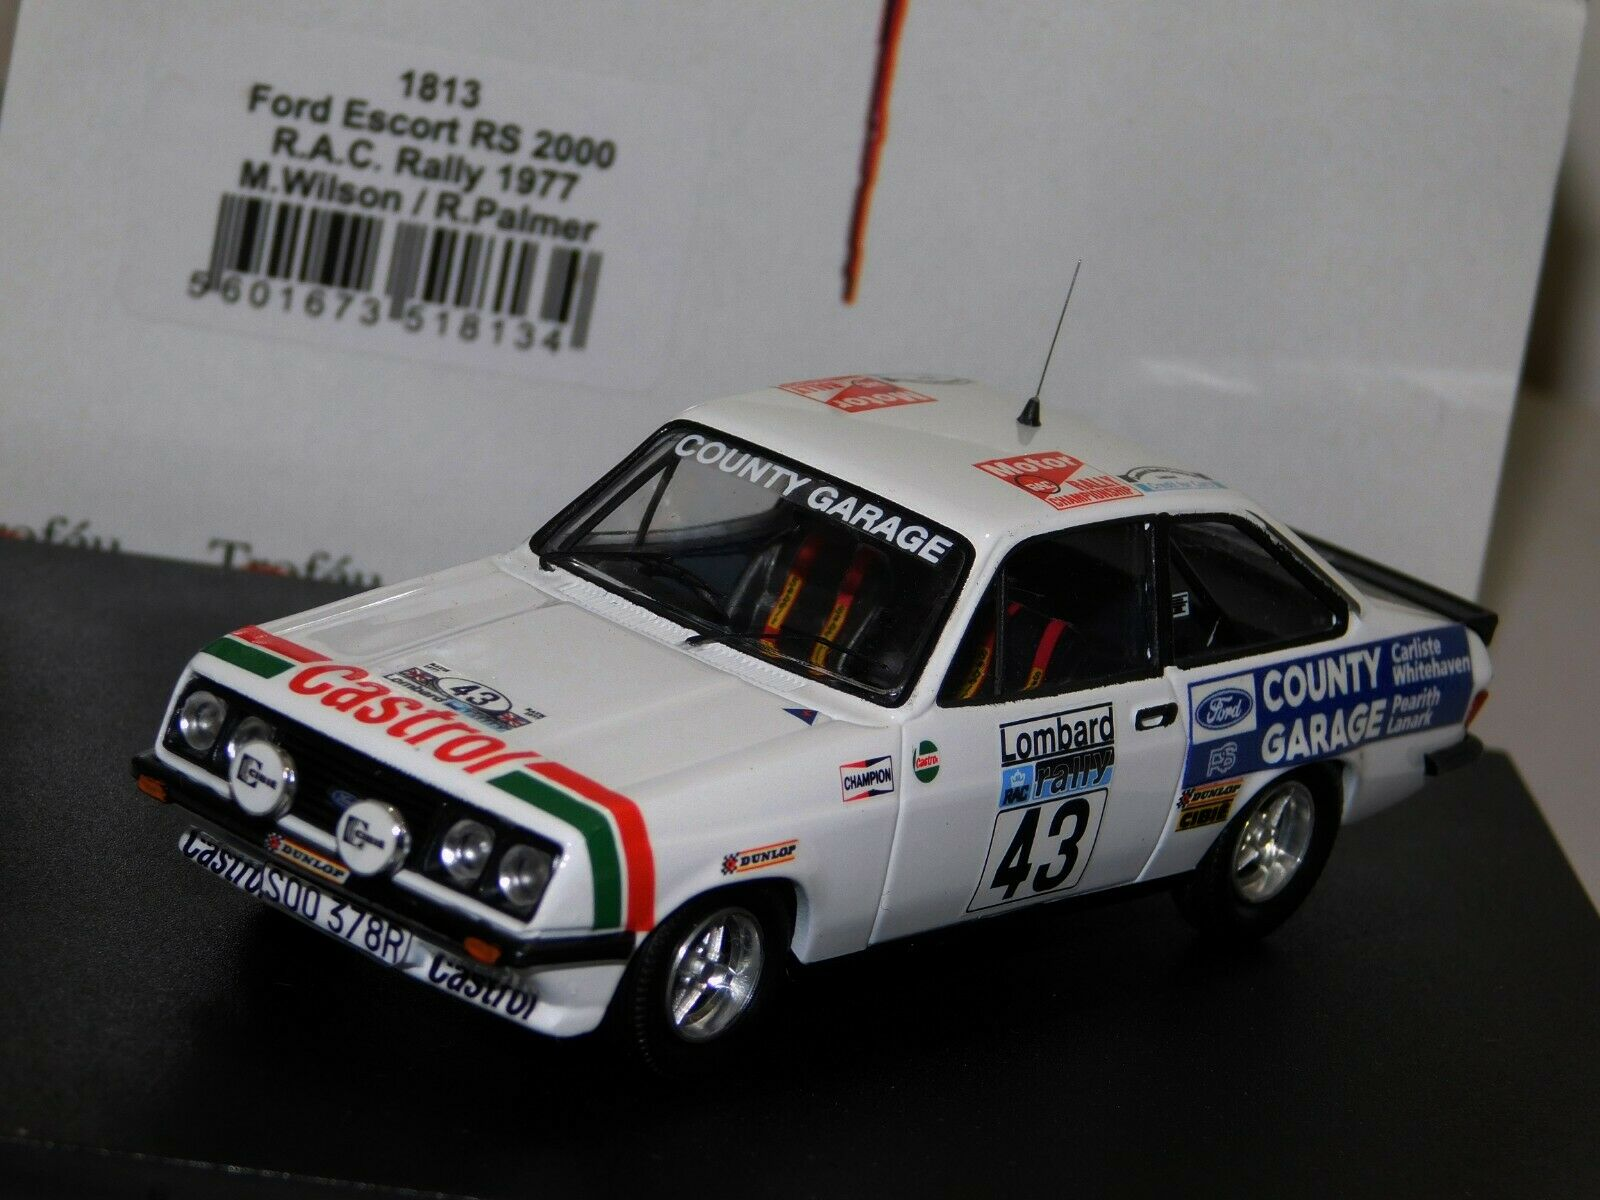 Ford Escort RS2000 Rac Rally 1977  43 Wilson porter TROFEU 1813 1 43